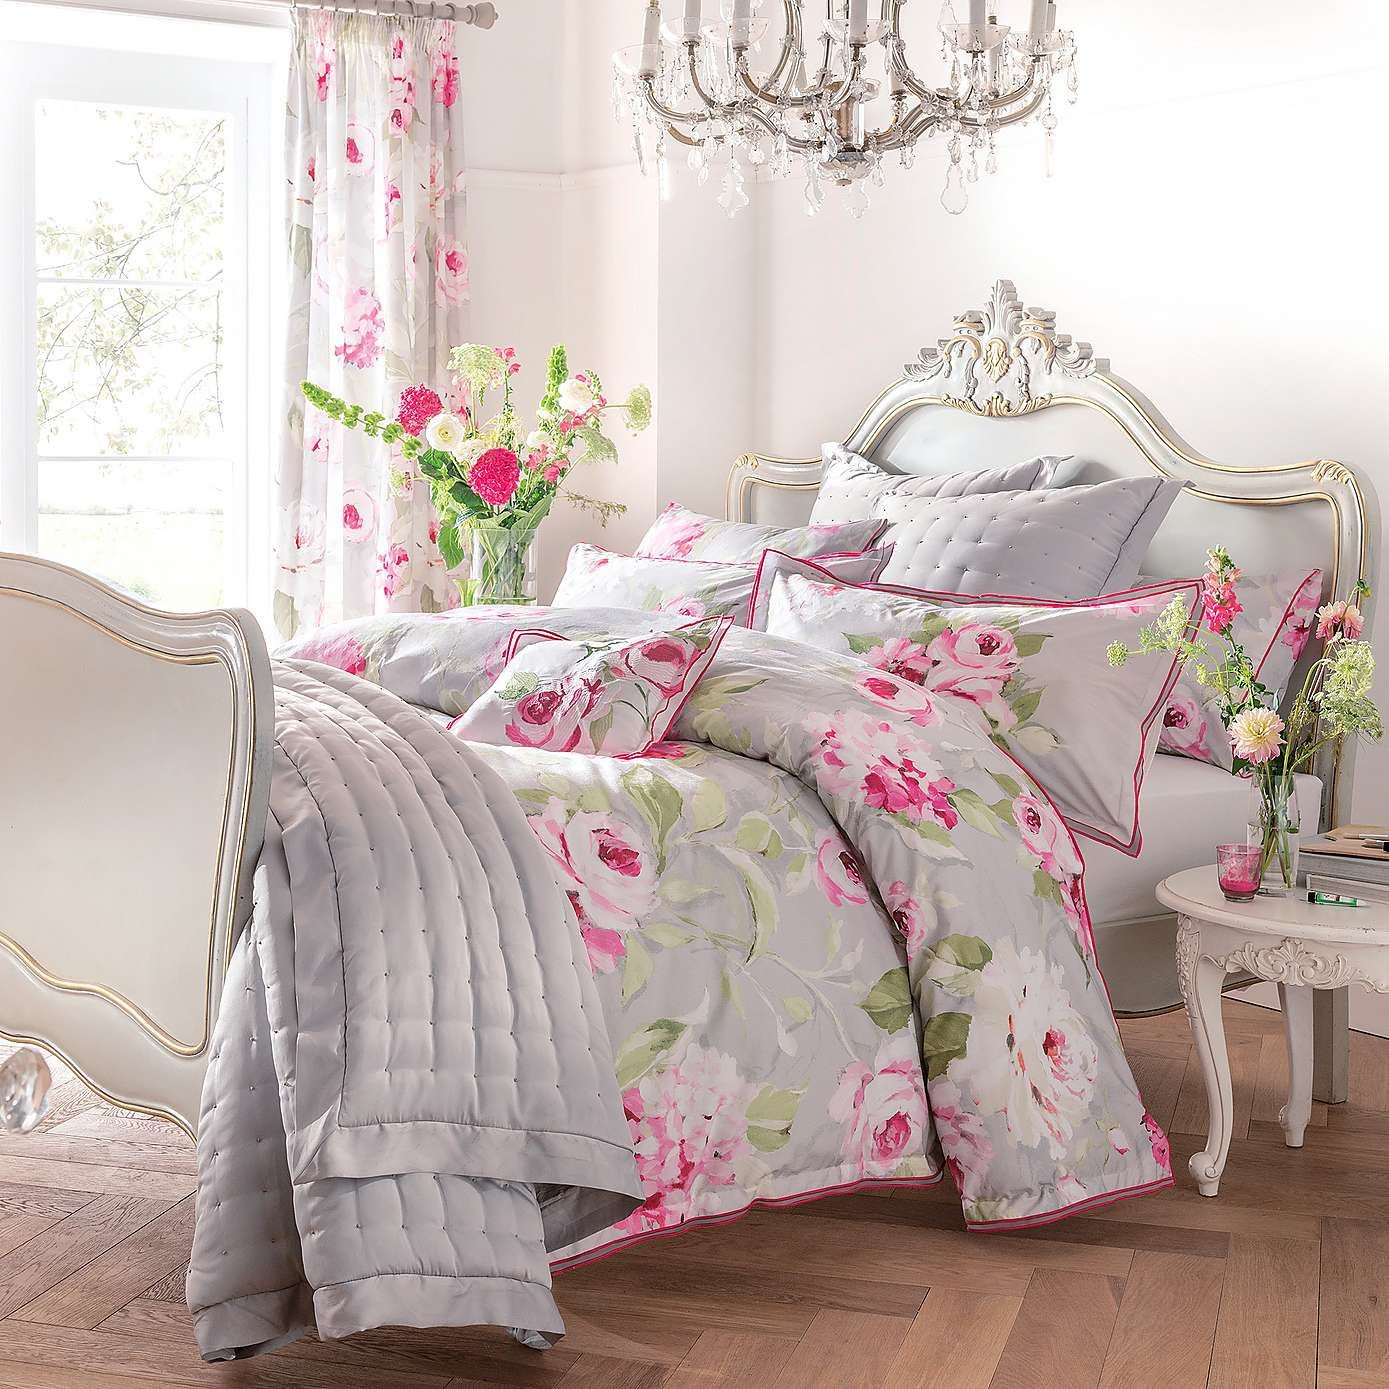 Pink Dorma Nancy Bed Linen Collection